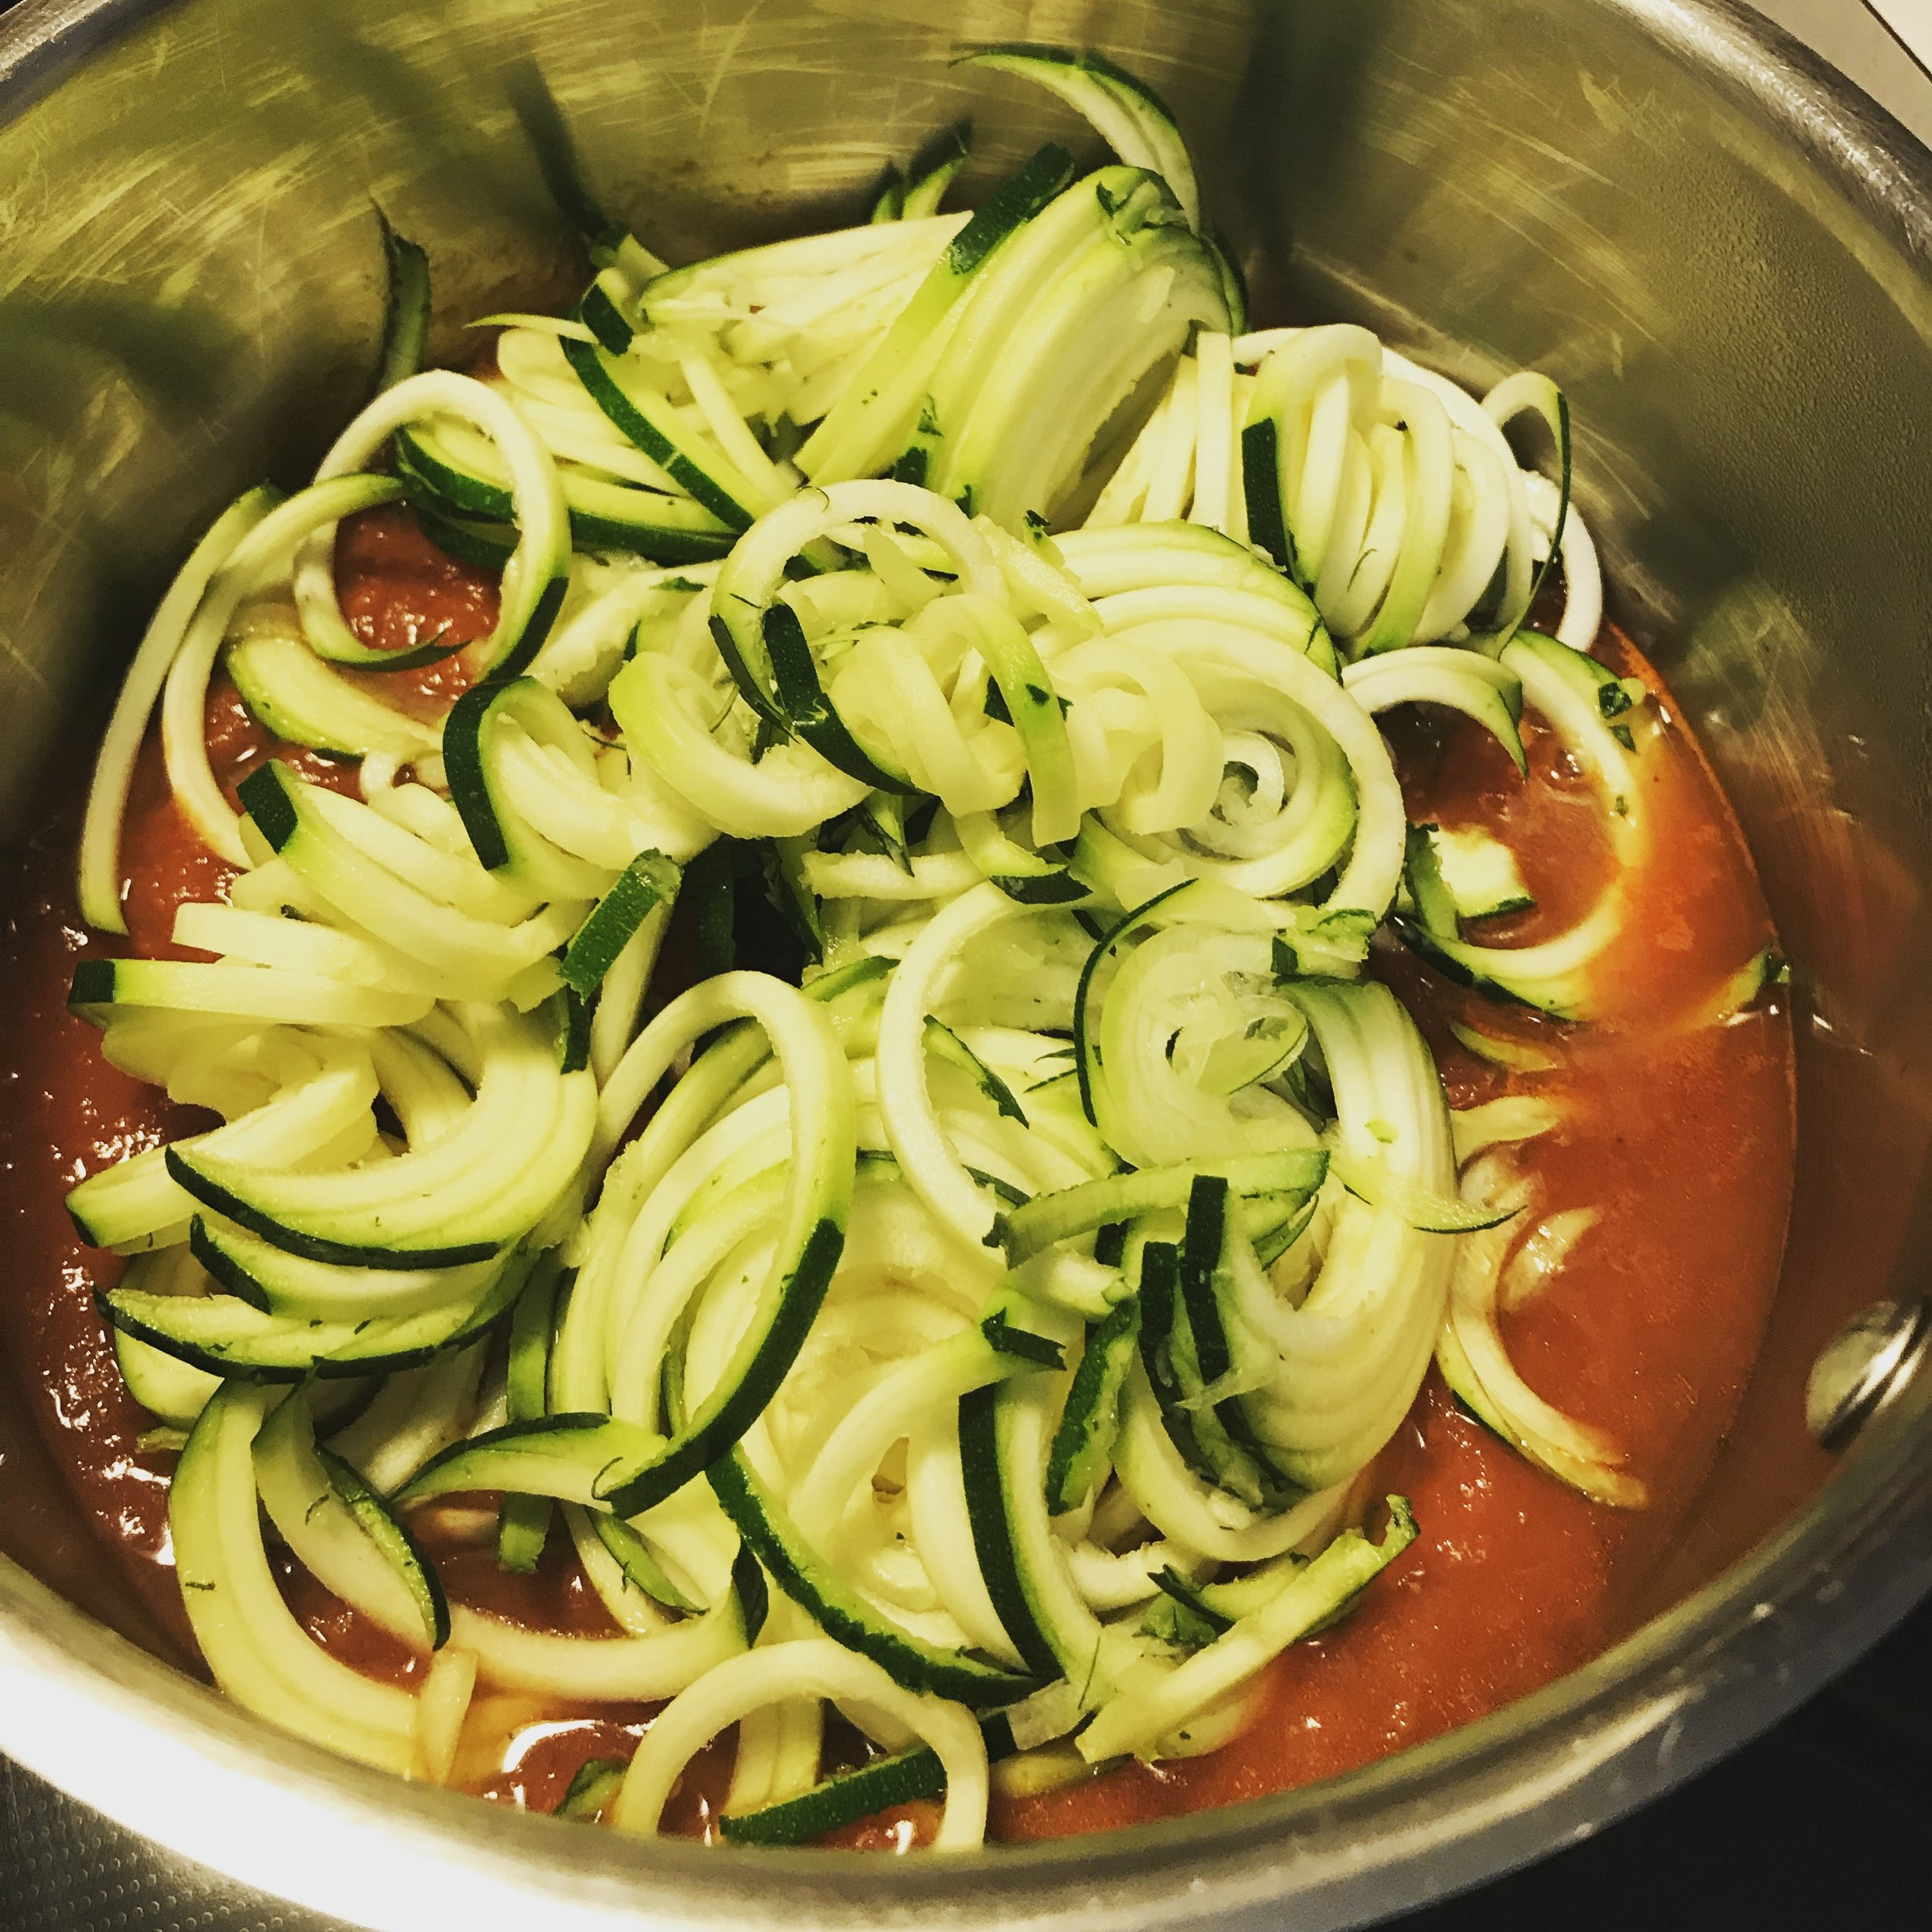 Zoodles! - Zucchini noodles made in a food processor in place of grains.